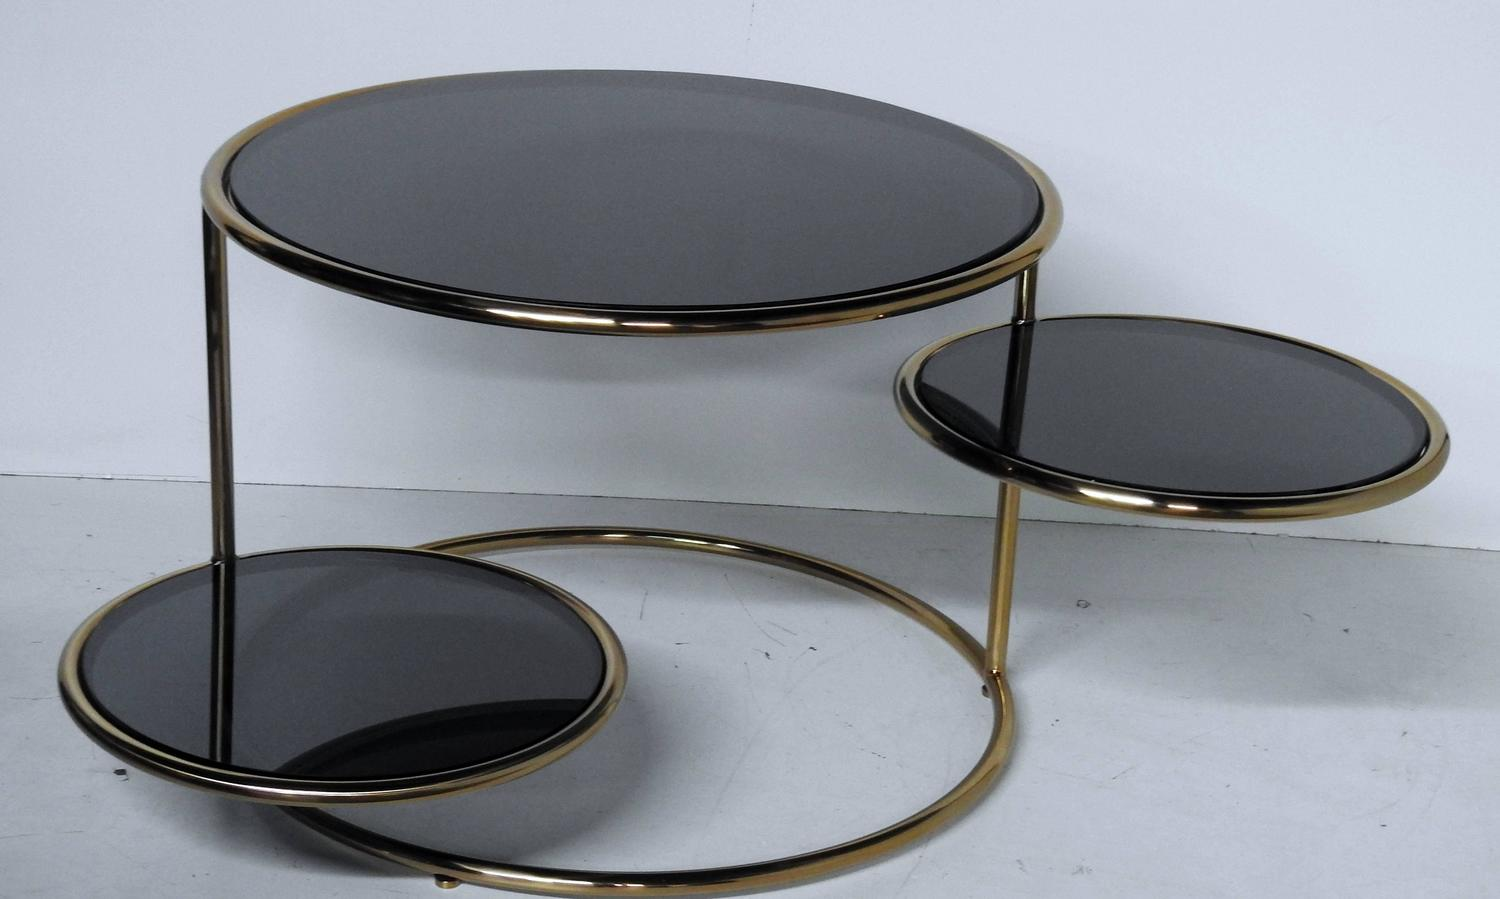 Modern Design Coffee Table With Black Glass Inserts For Sale At 1stdibs